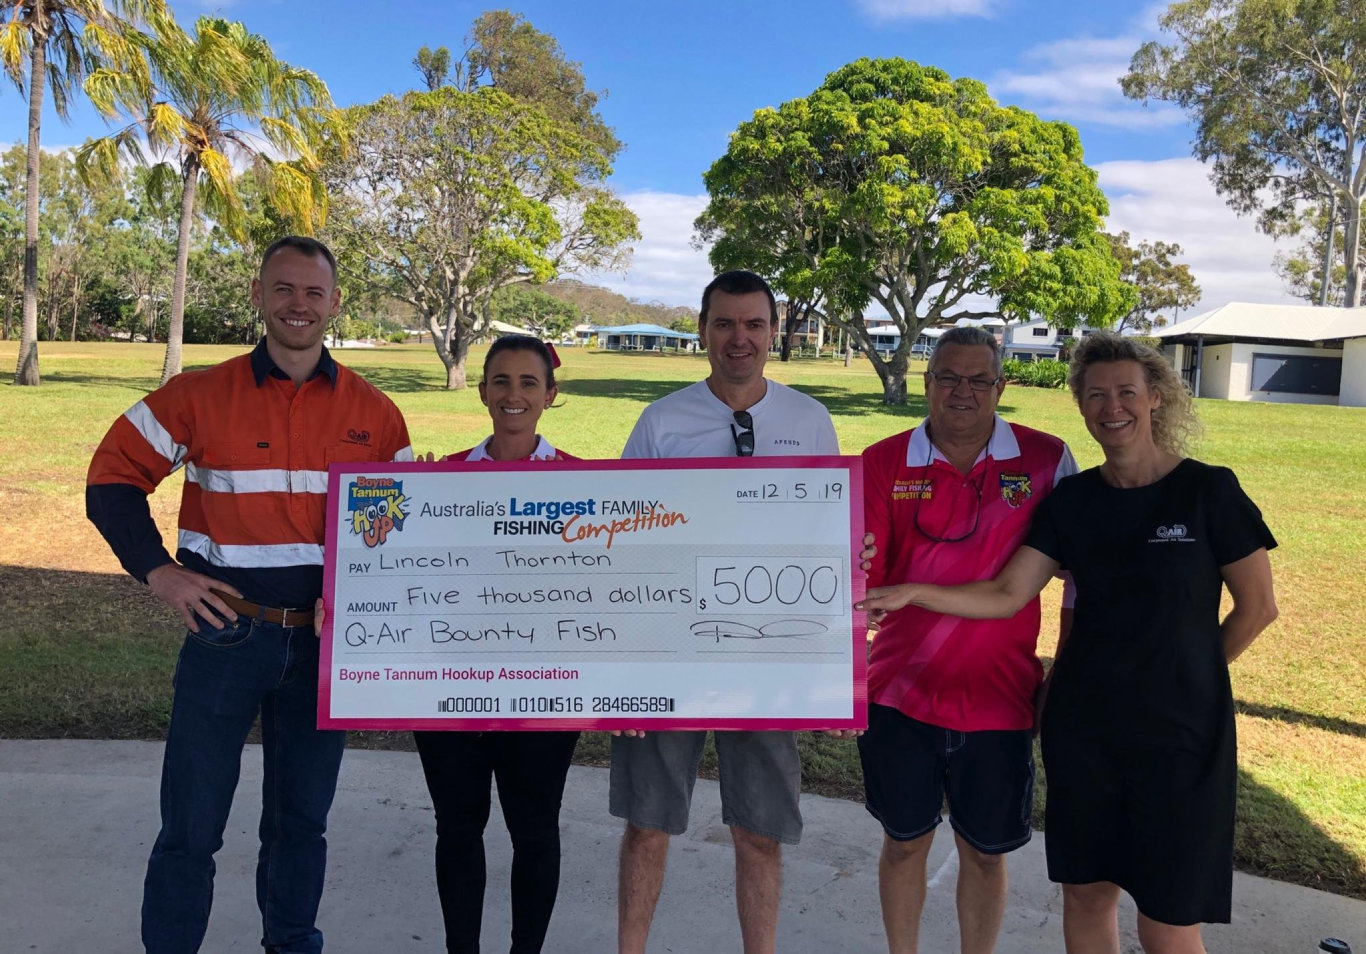 Lincoln Thornton (middle) is presented with a $5000 cheque for catching the Q-Air Port of Gladstone bounty fish. Pictured with him is Joshua Tindal and Karen Tindal from Q-Air and Rebecca Long and Andrew Davis from the Boyne Tannum HookUp at Bray Park.